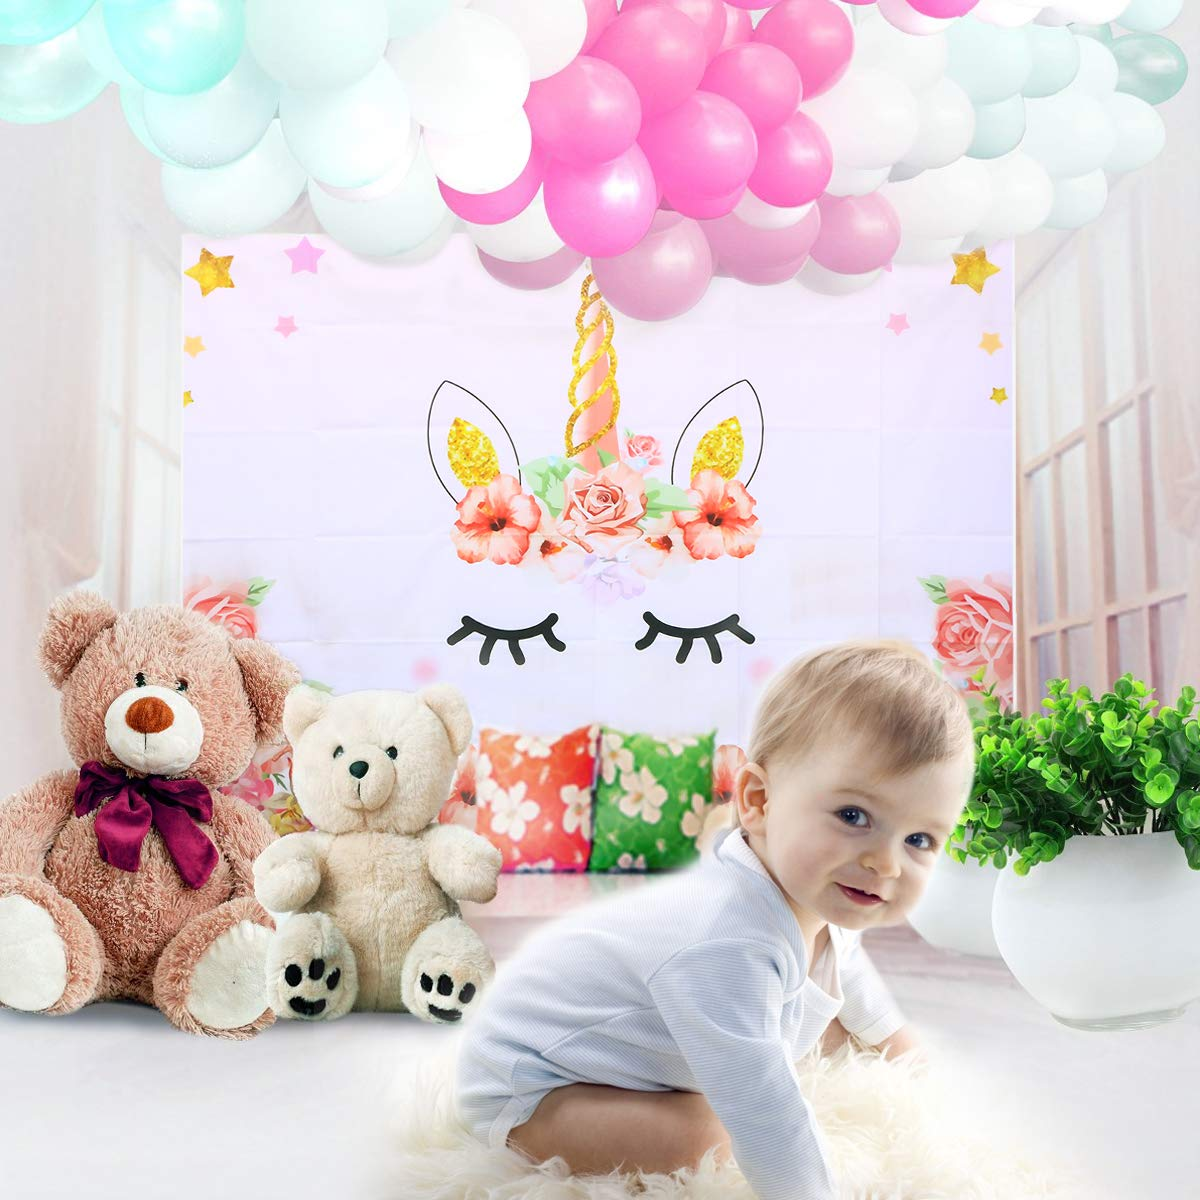 Amazon.com: Uonlytech Unicorn Photo Studio Background 3D Baby Birthday Party Photography Backdrop Unicorn Theme Baby Shower Birthday Party Decorations ...